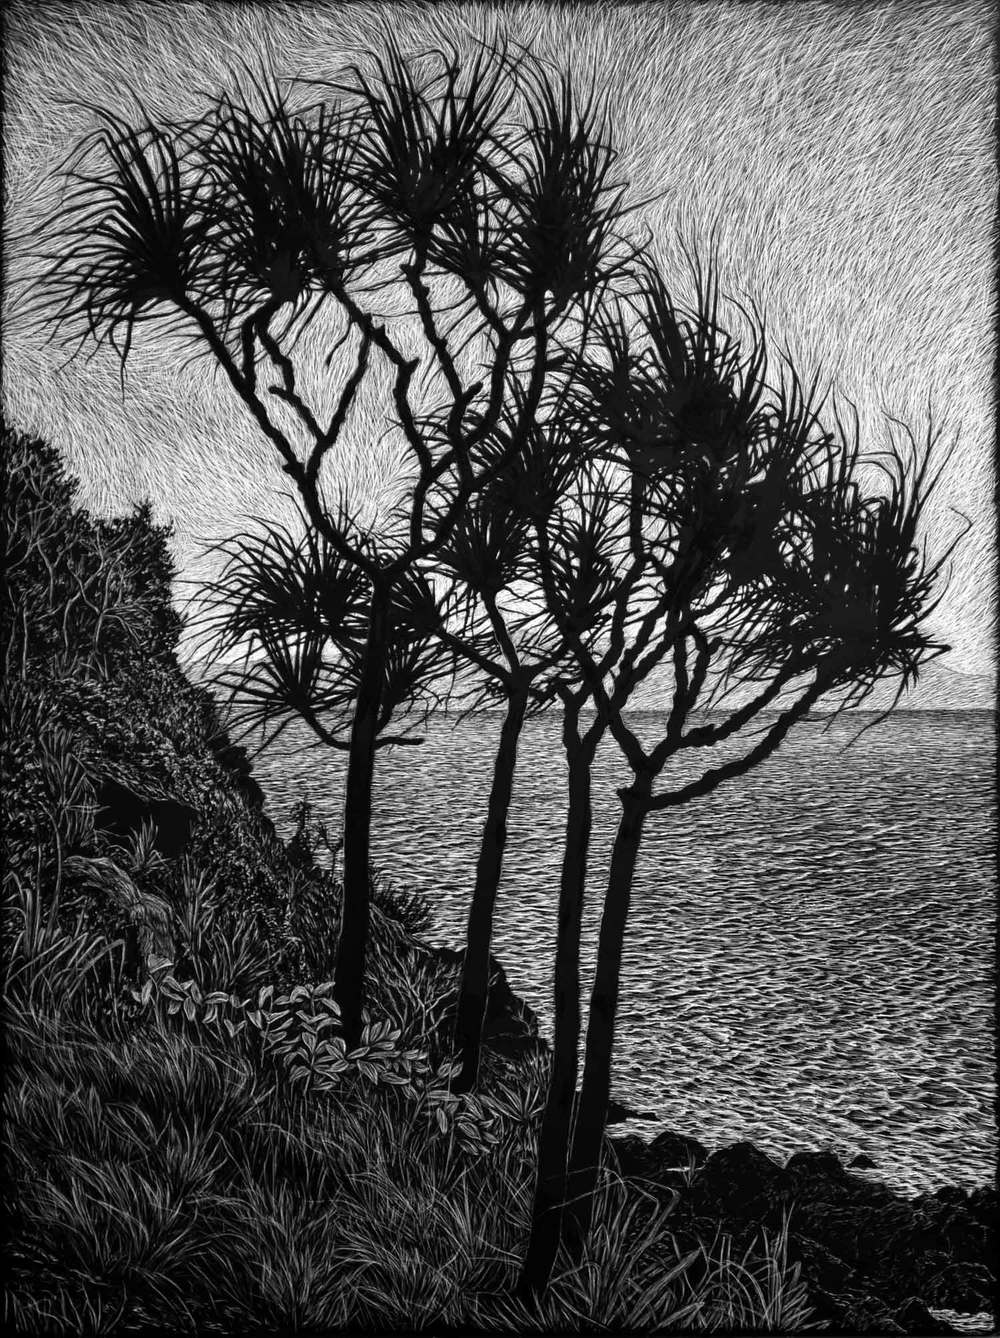 headland-with-pandanus-rachel-newling.jpg